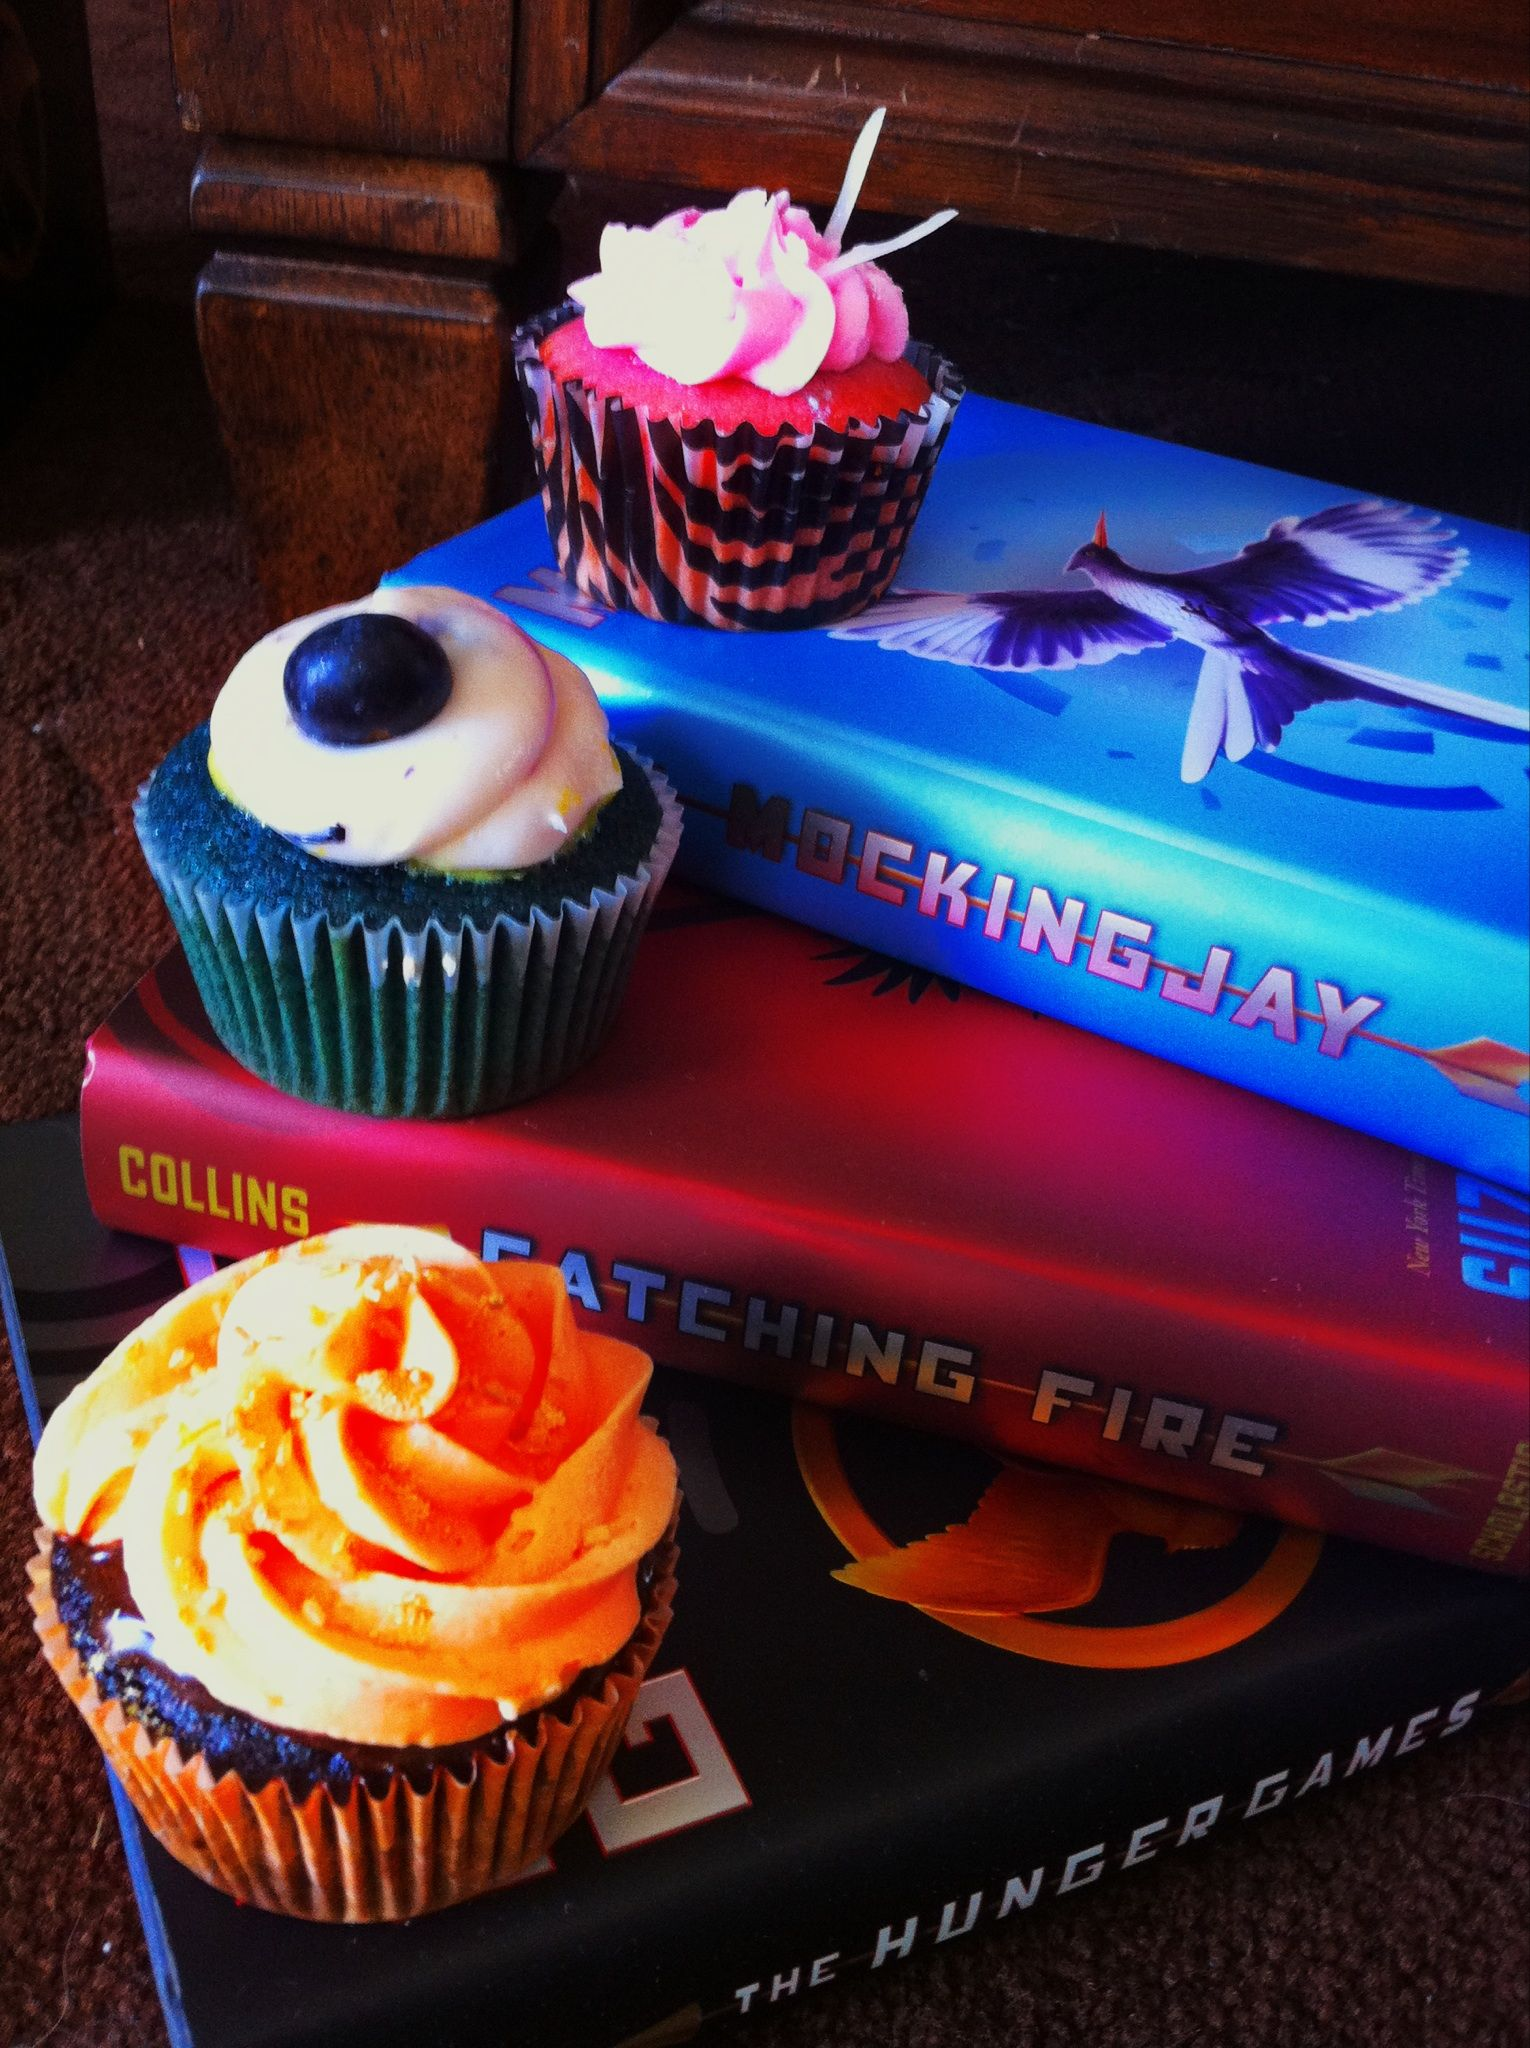 The Hunger Games Cupcakes Girl On Fire Chili Chocolate Cupcake